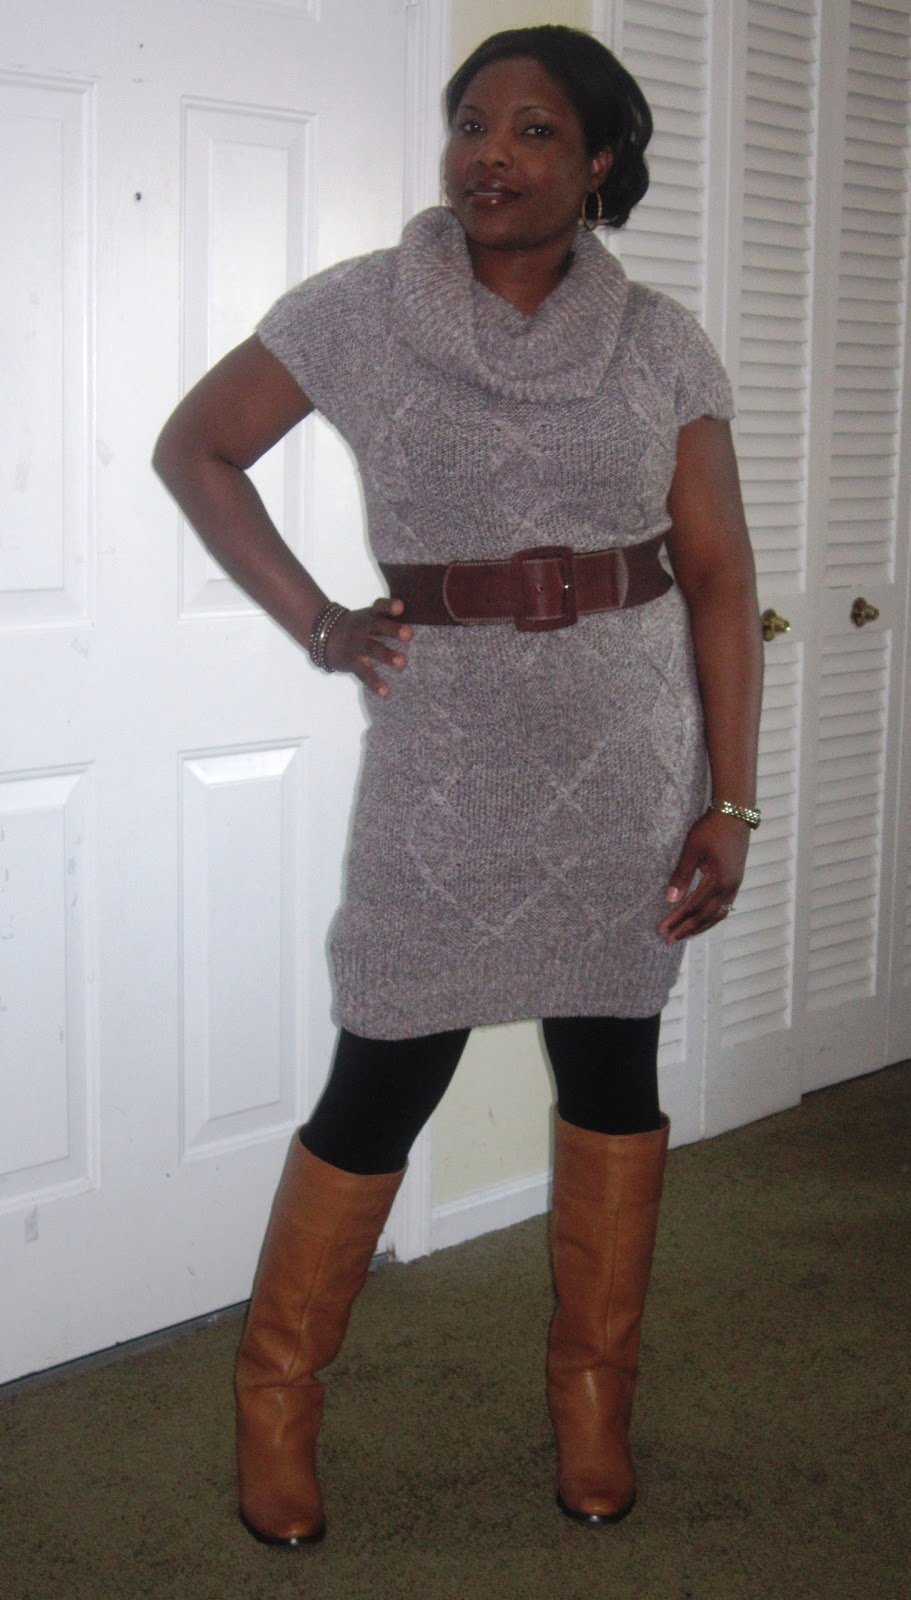 Leggings And Boots http://beautystyleandgrowth.blogspot.com/2012/01/tunic-and-leggings-and-nine-west-boots.html